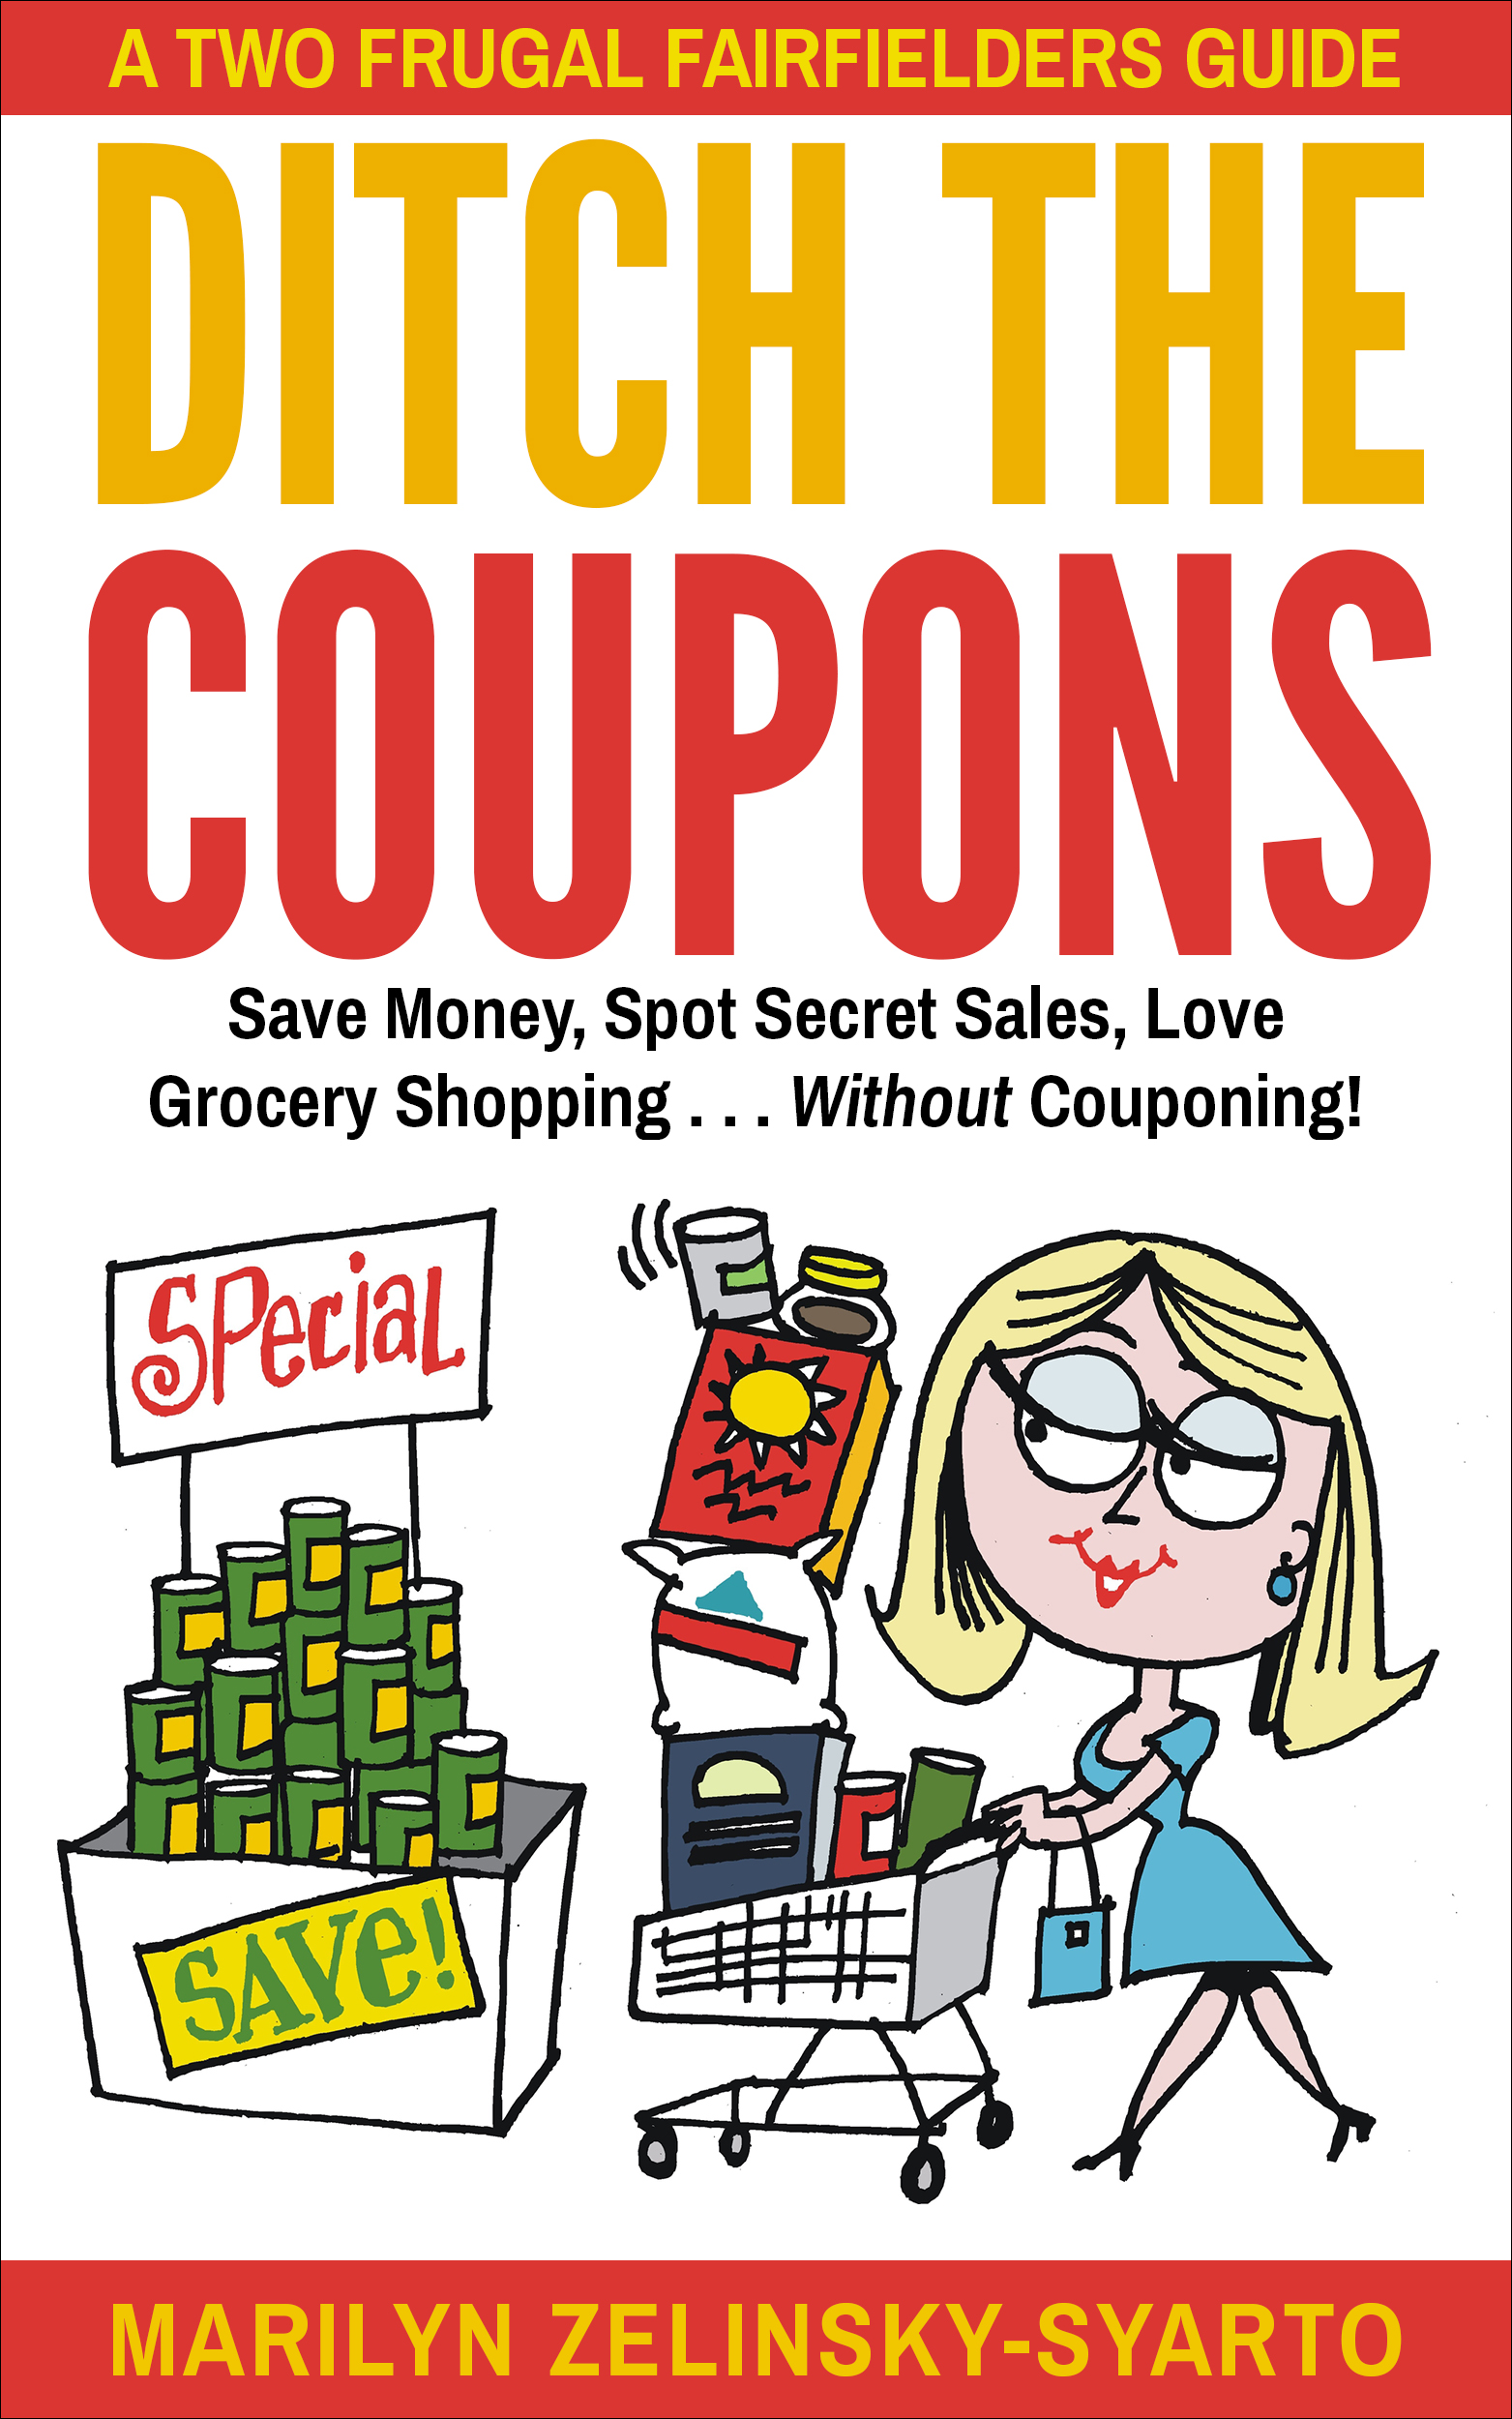 If You Hate Coupons This Post Is For You – Two Frugal Fairfielders